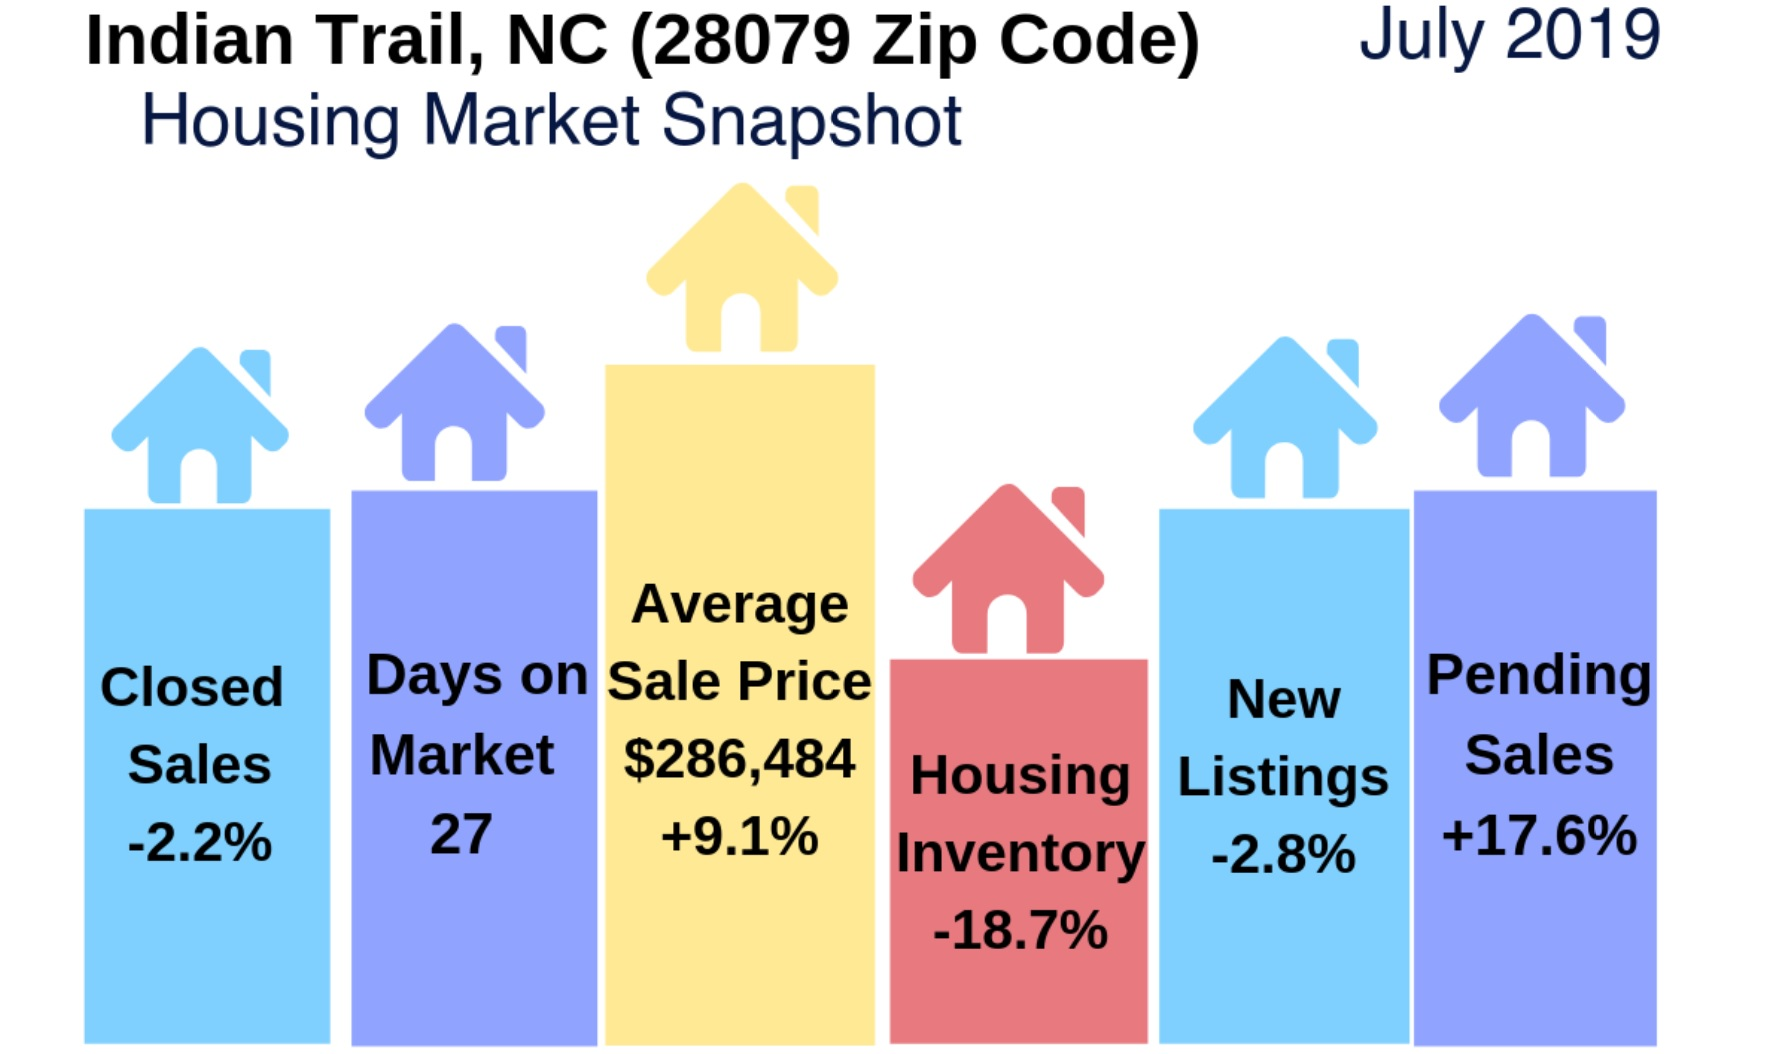 Indian Trail, NC (28079 Zip Code) Housing Market Update & Video: May 2019